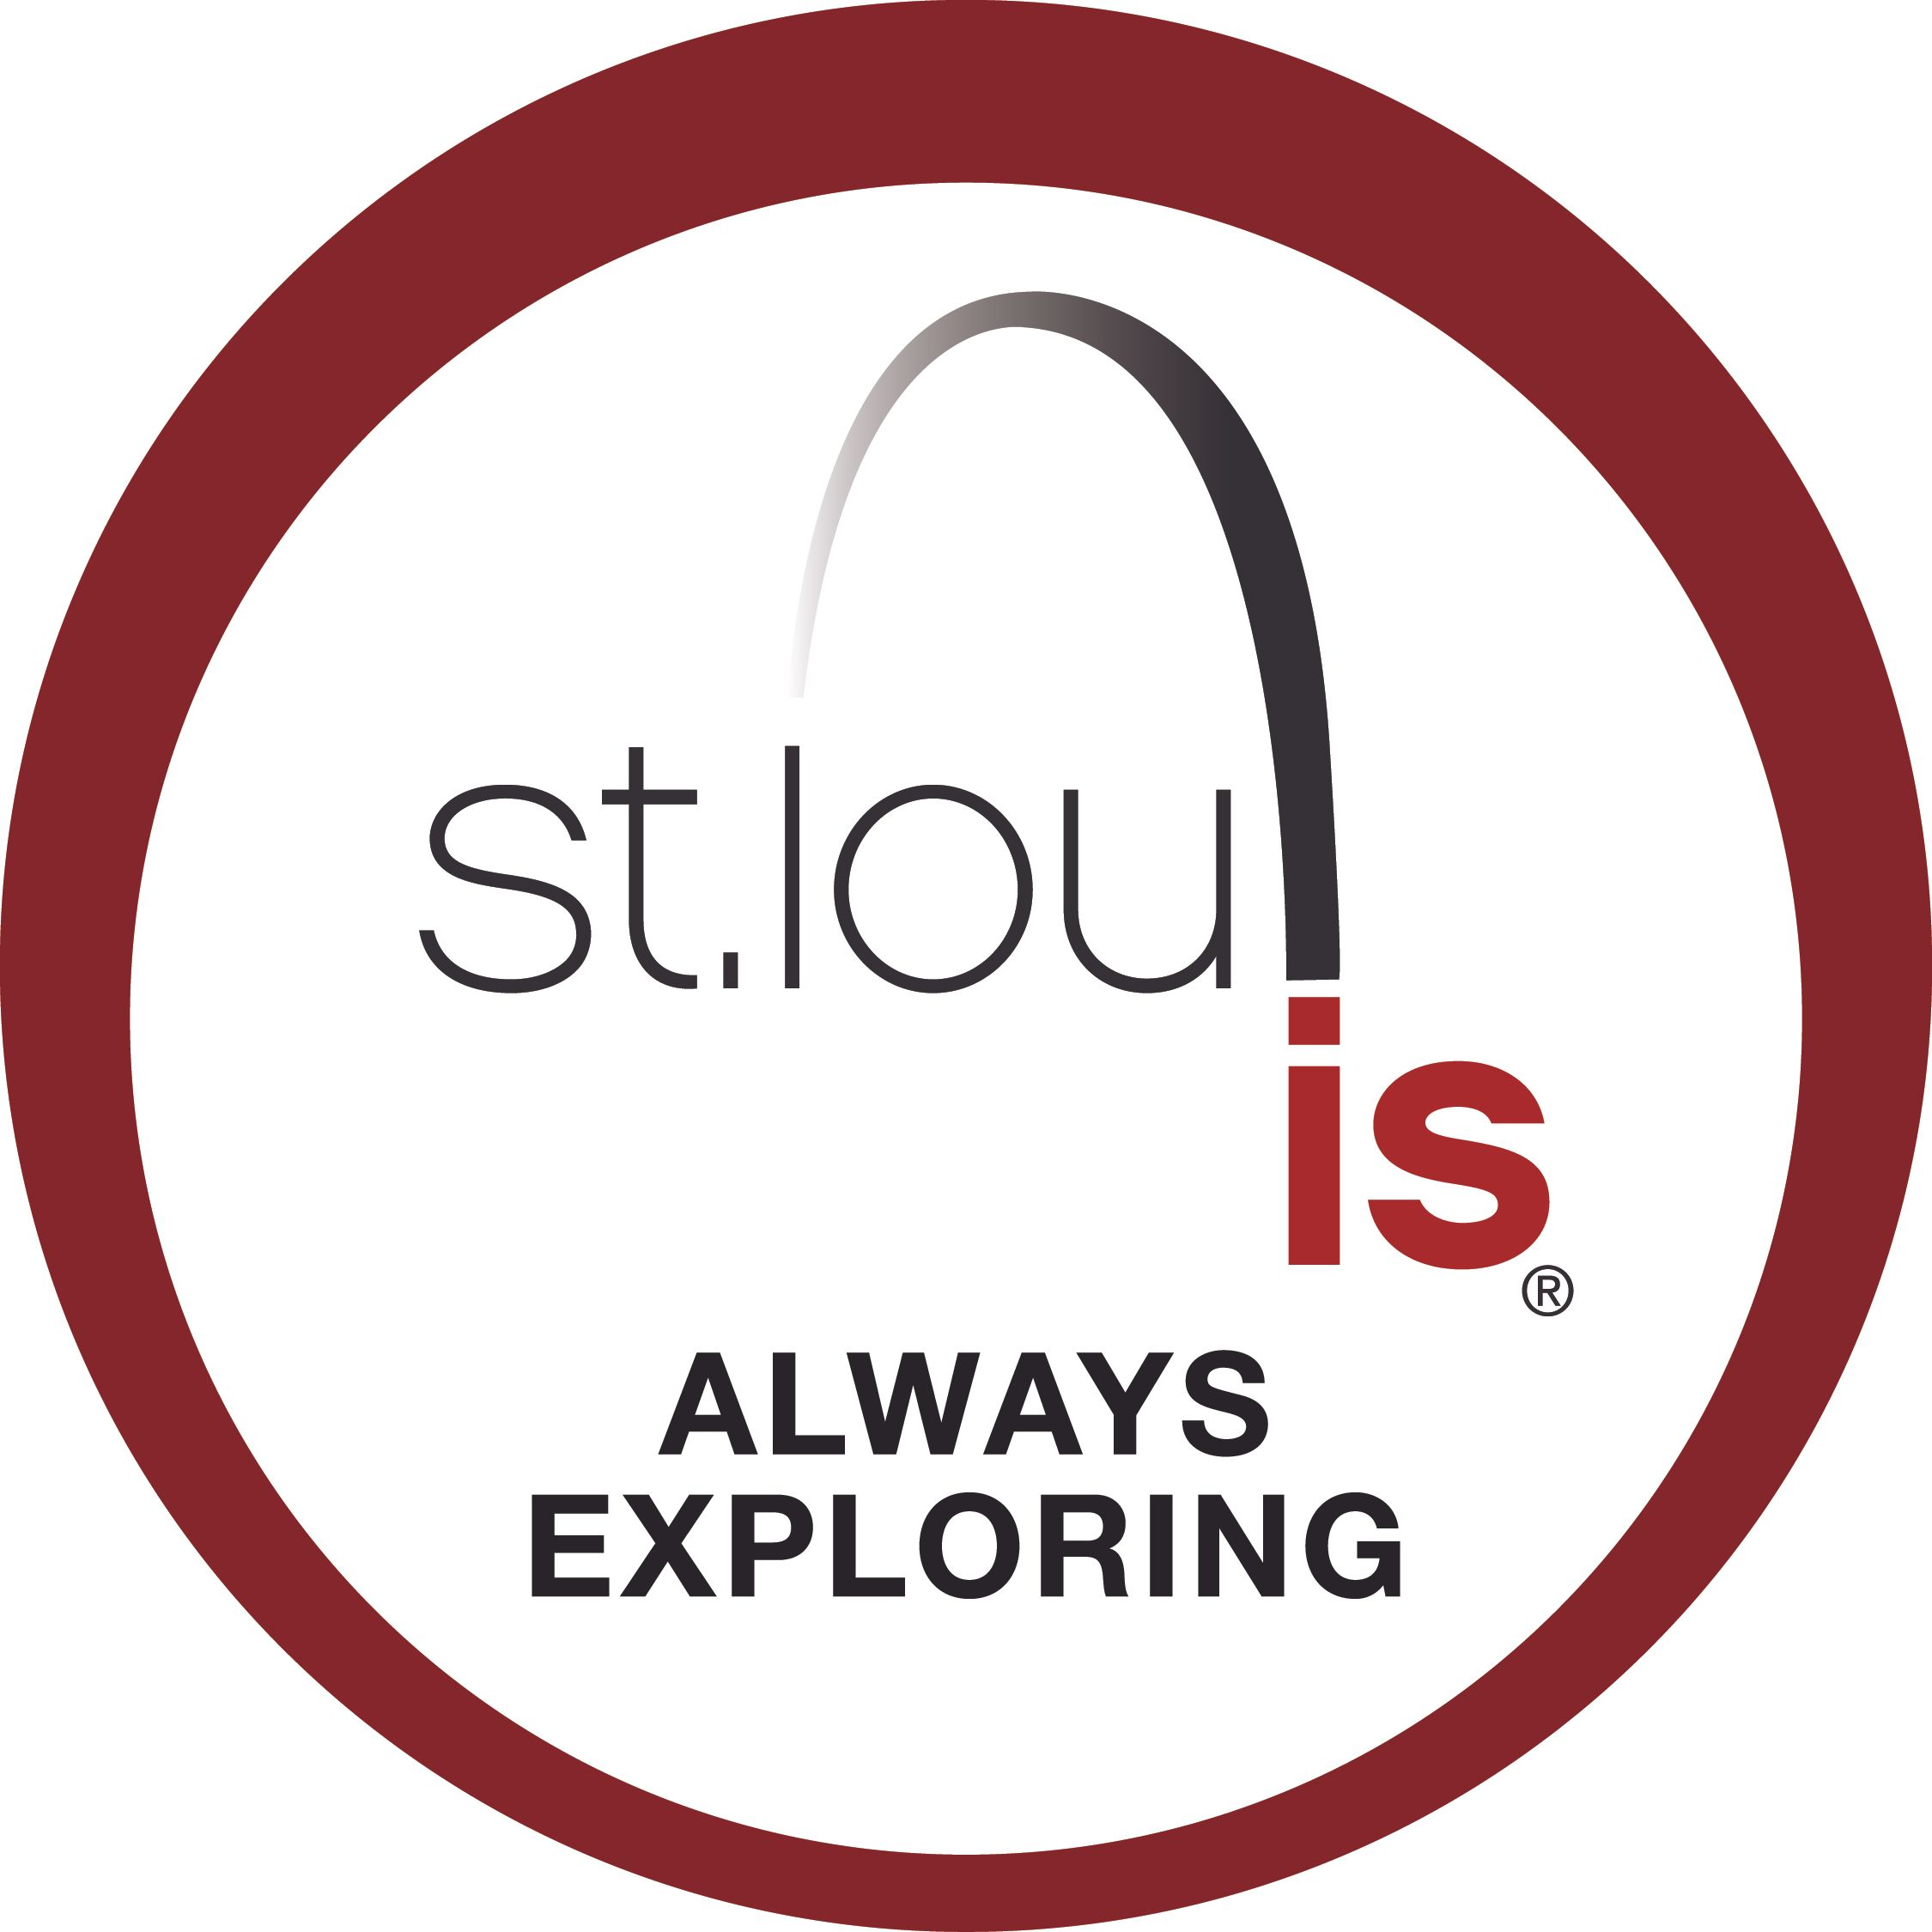 https://explorestlouis.com/